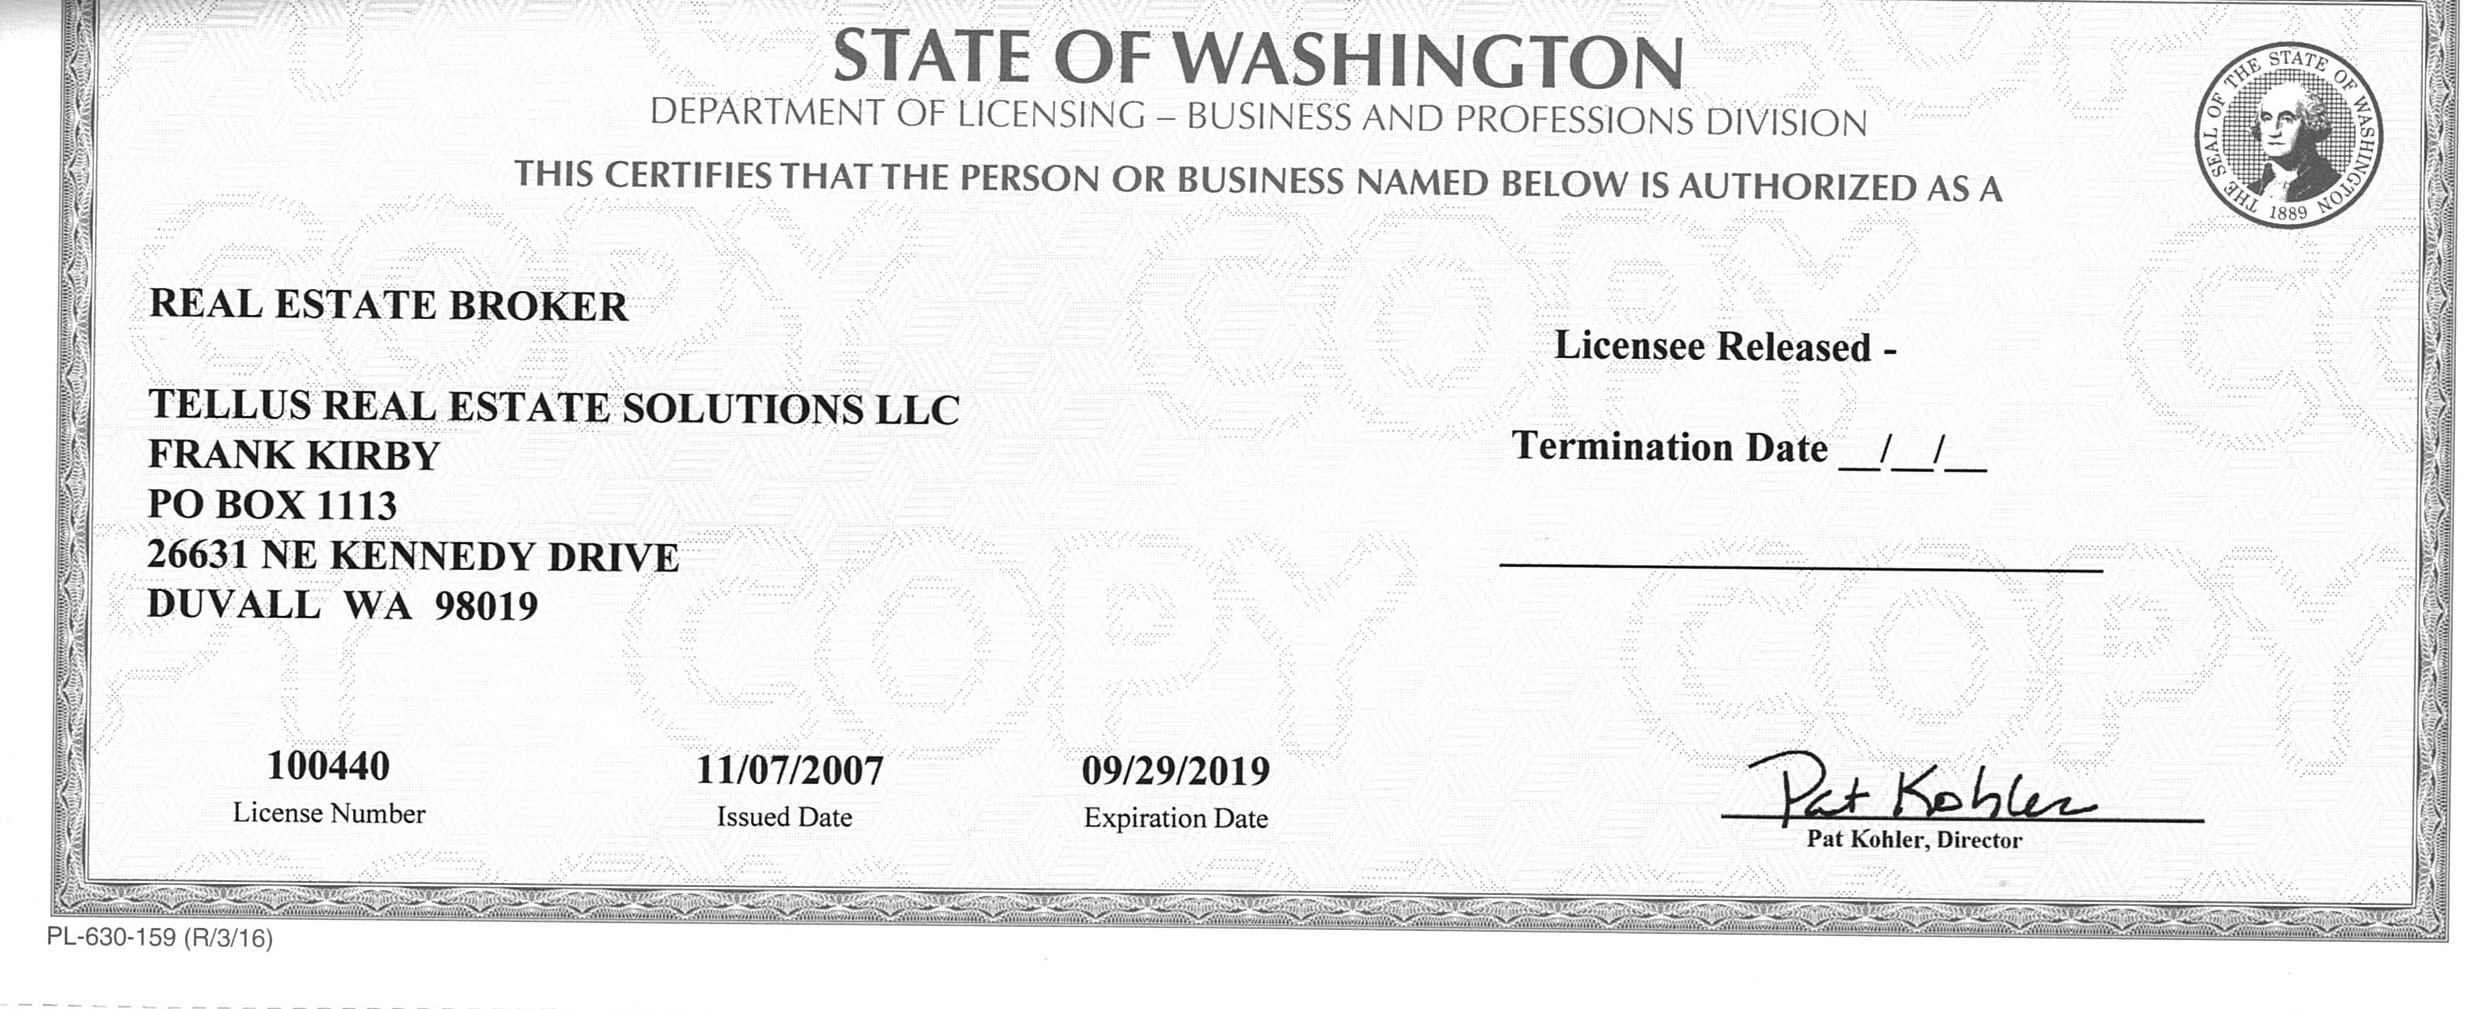 Image of license for Frank Kirby